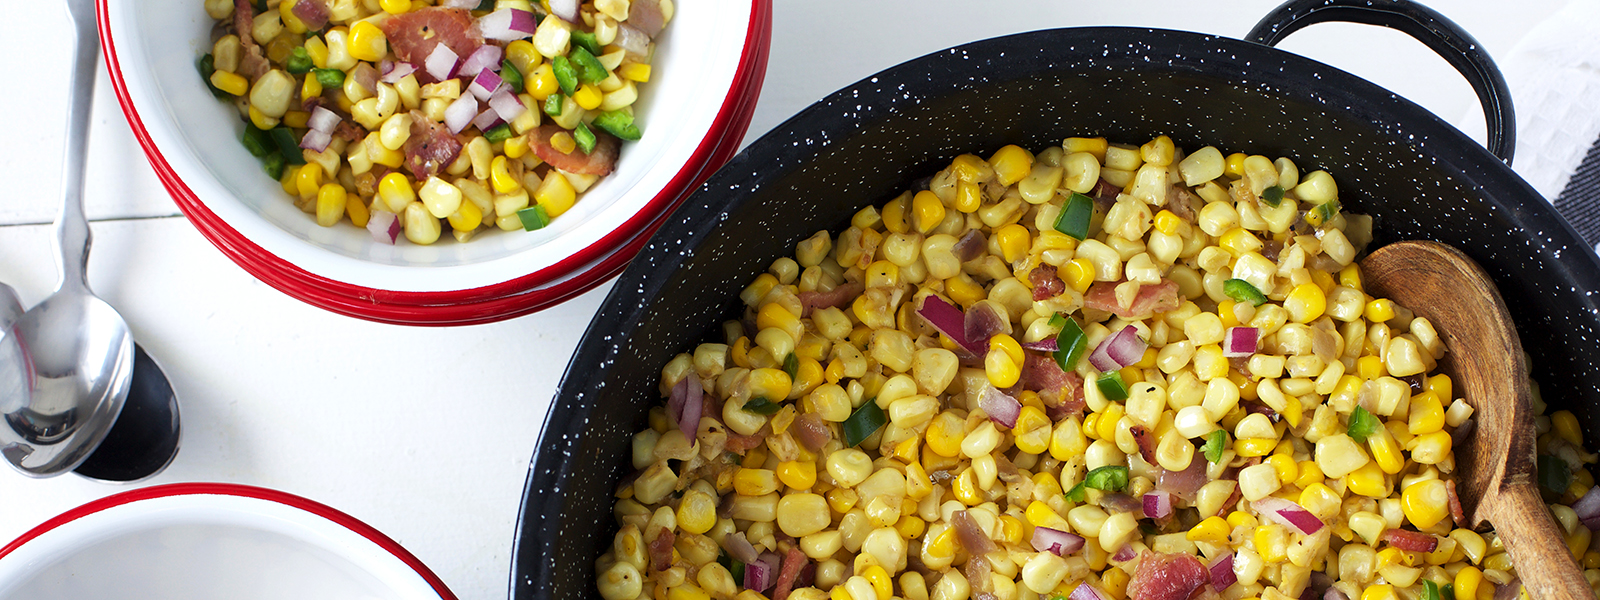 39-bacon_corn_hash.jpg